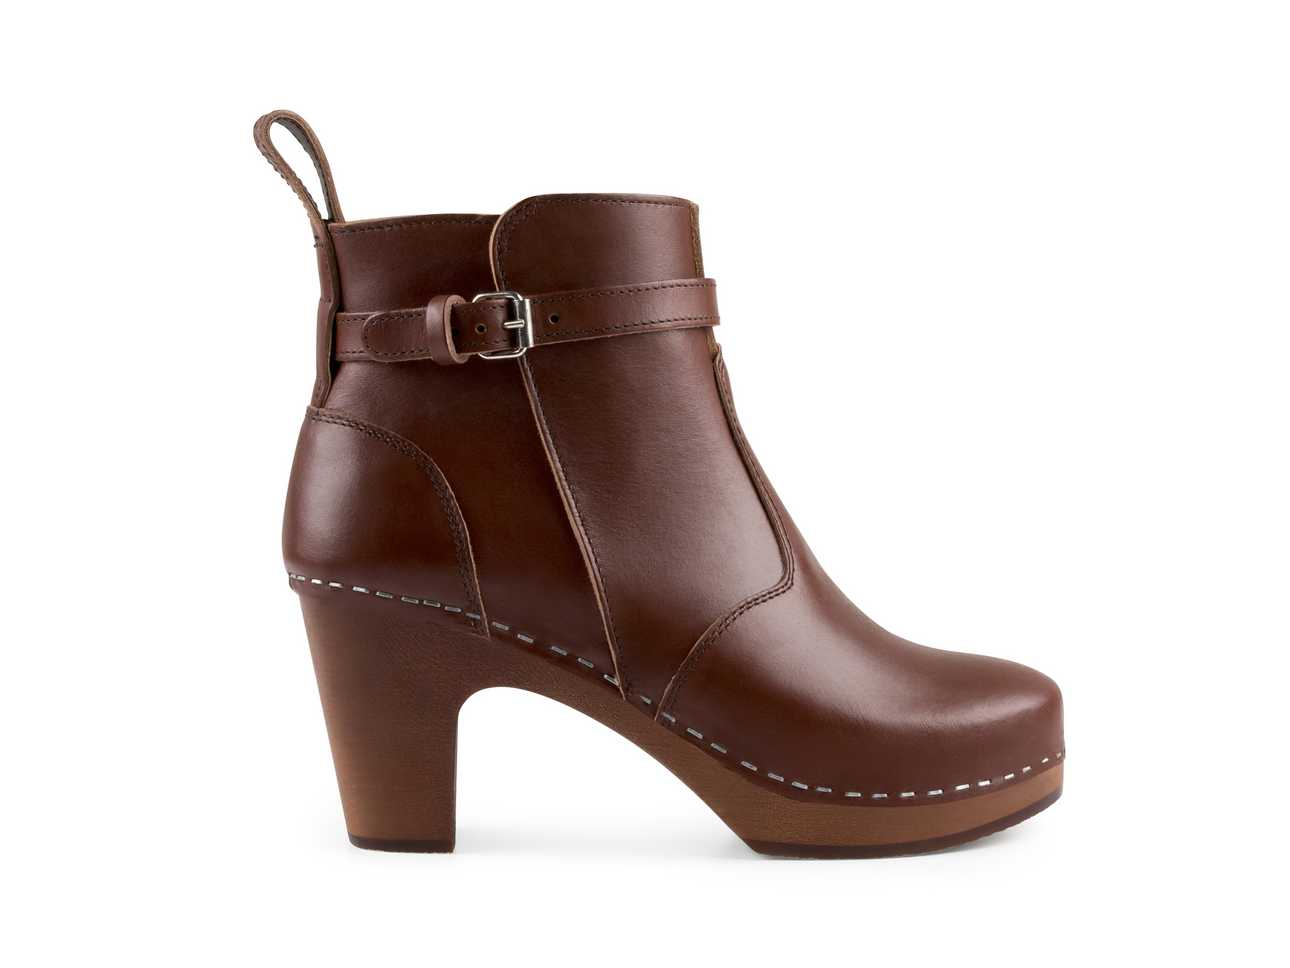 High Heeled Jodhpur Cognac/cognac sole